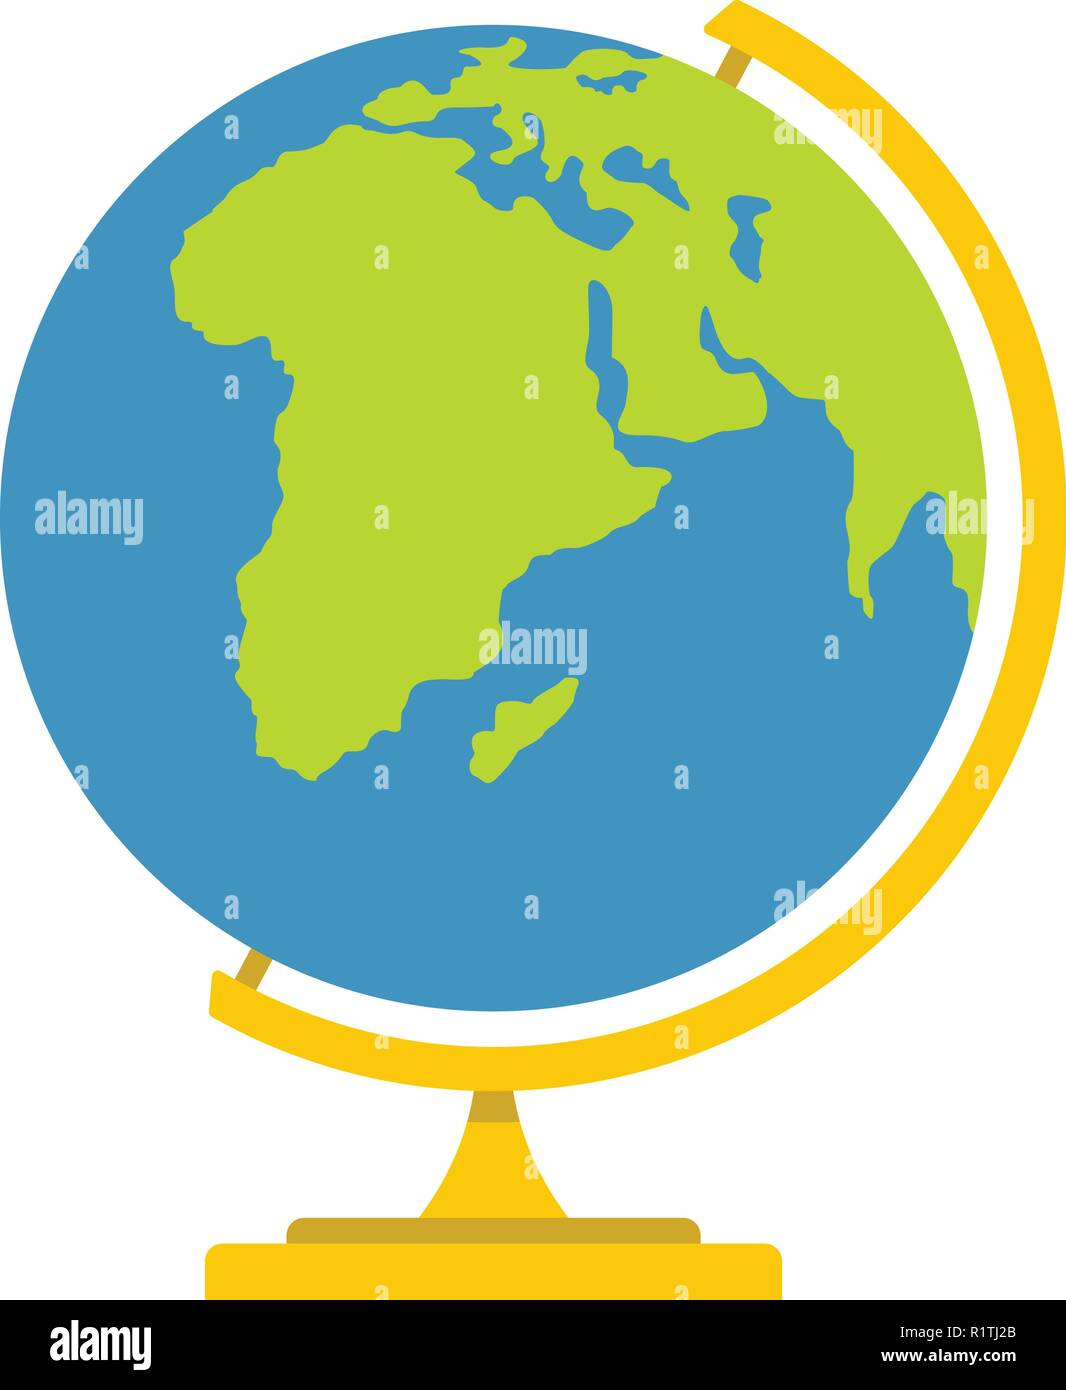 Official Flat Earth Map.Flat Earth Map Stock Photos Flat Earth Map Stock Images Page 3